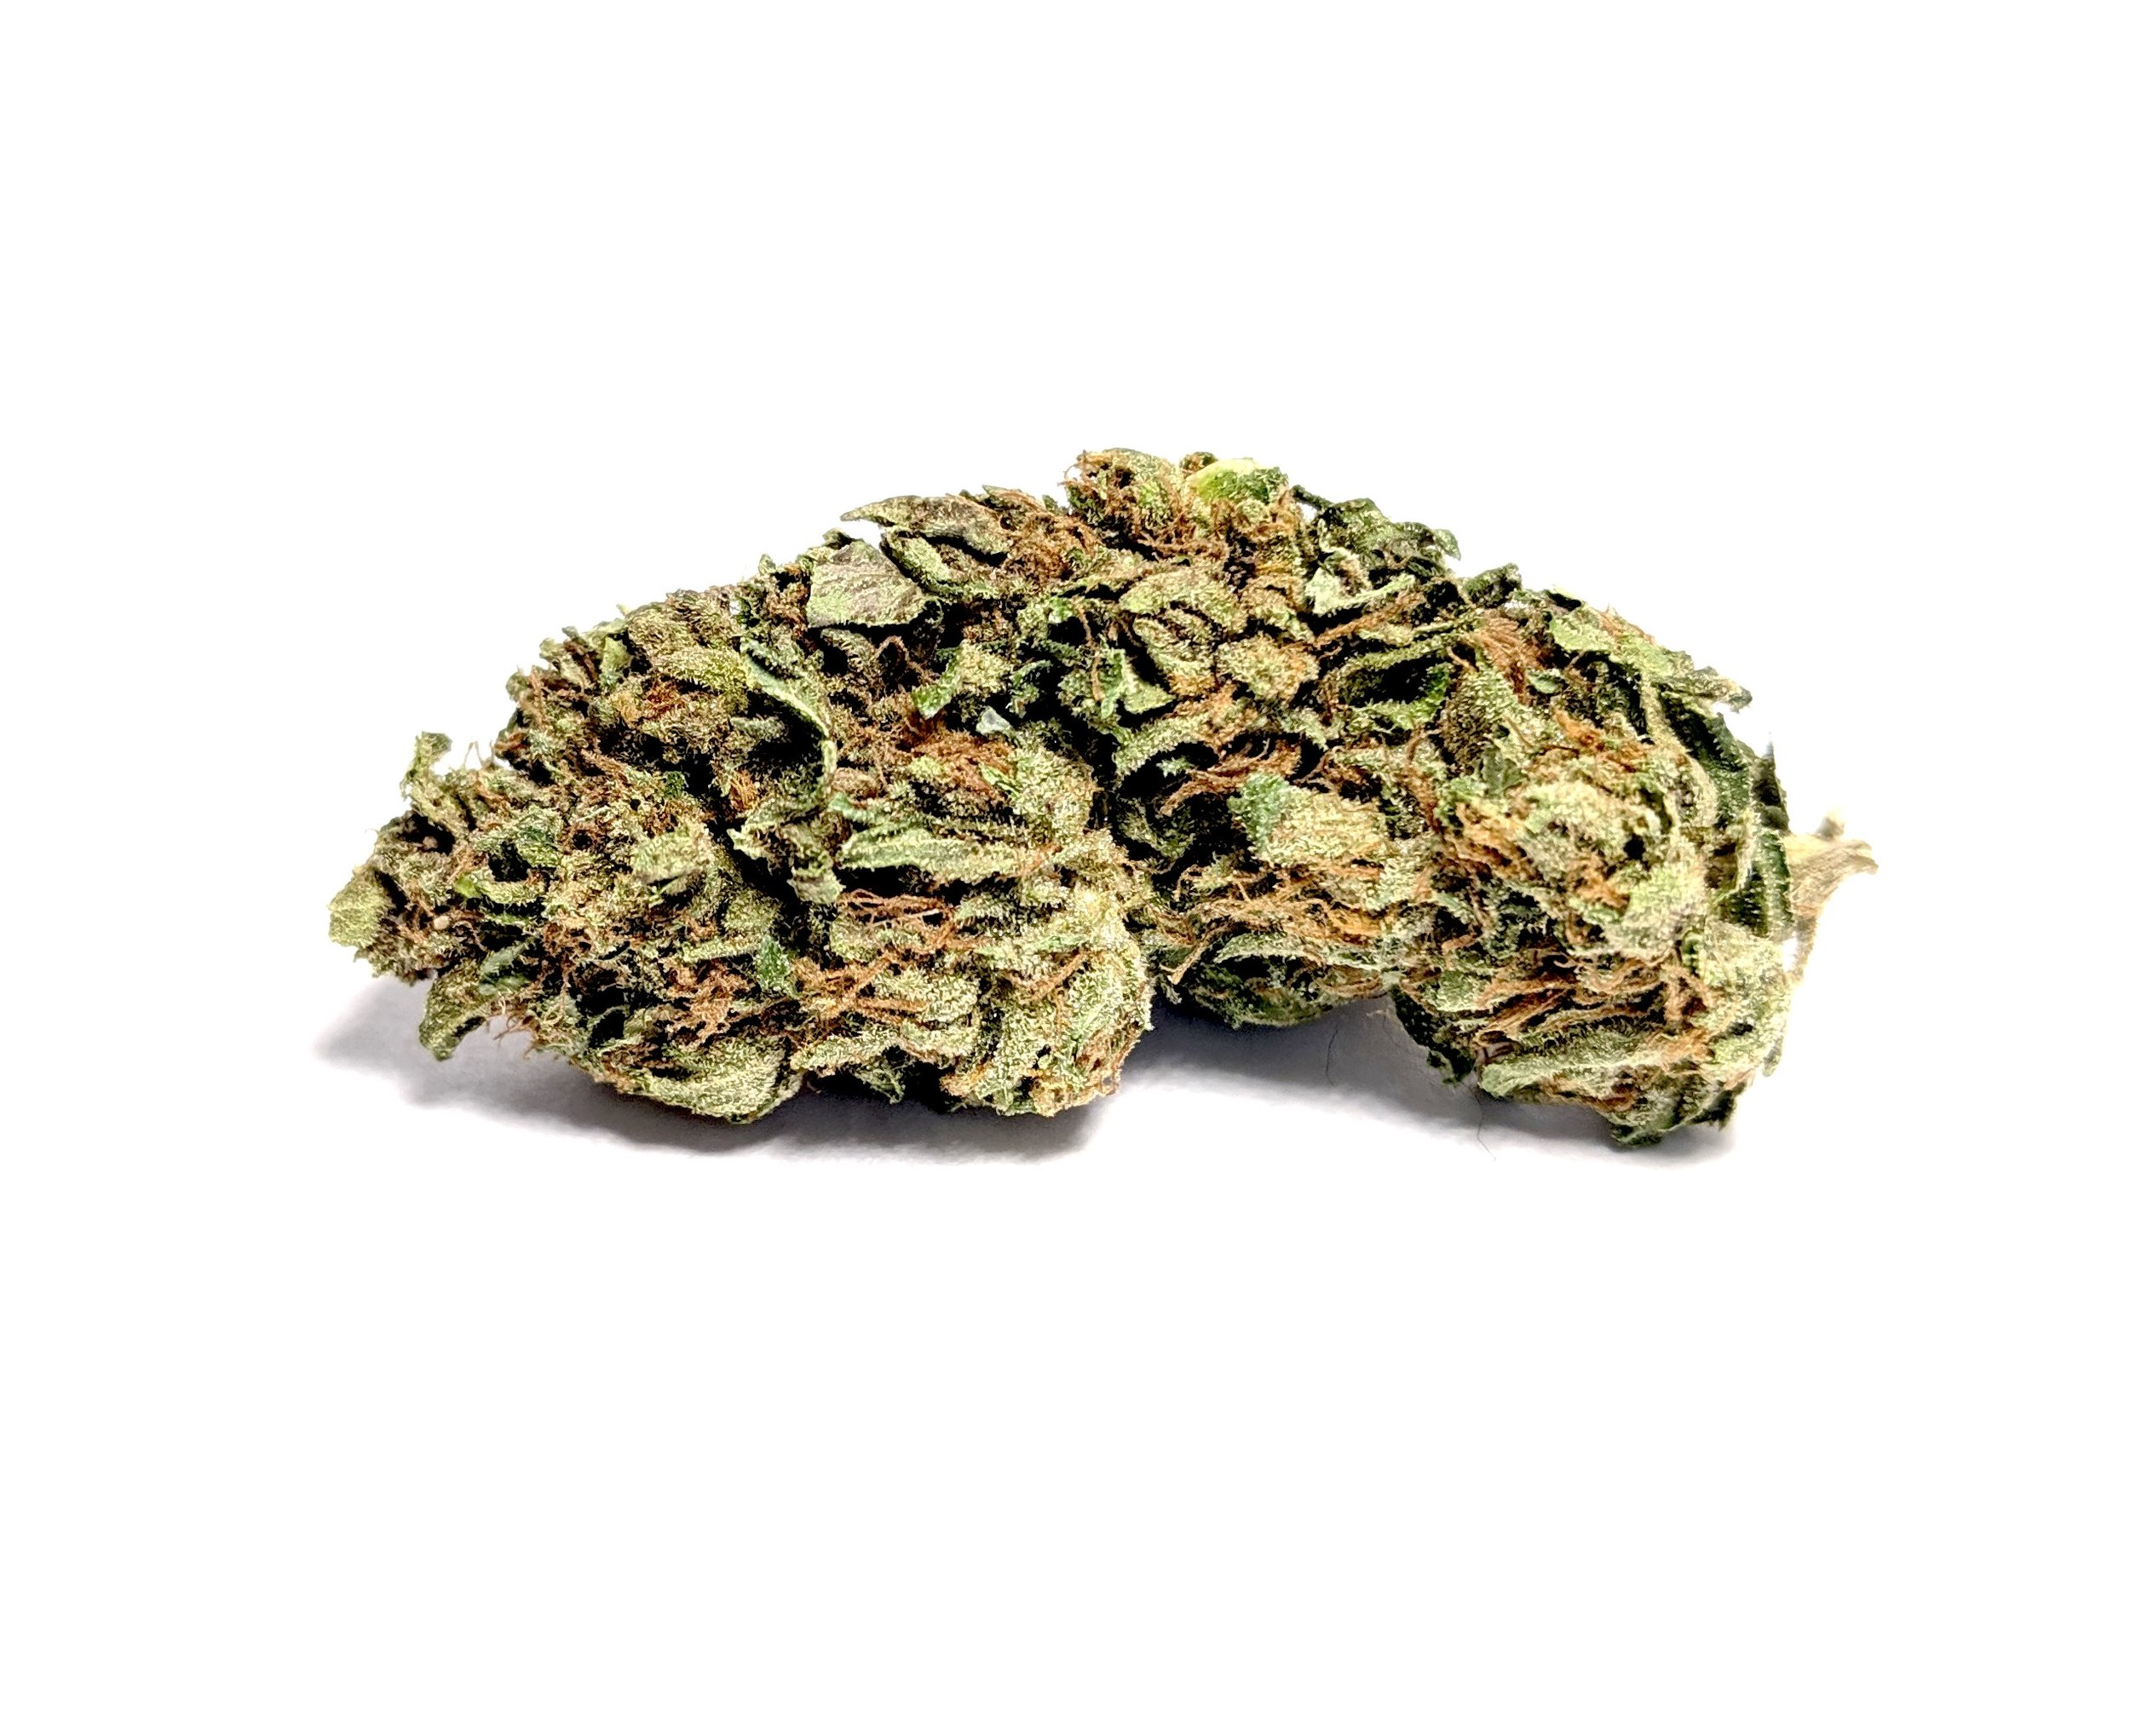 Pink Kush- Hybrid    1/4- $60 1/2-$100 OZ-$180   Pink Kush, as coveted as its OG Kush relative, is an indica-dominant hybrid with powerful body-focused effects. In its exceptional variations, pink hairs burst from bright green buds barely visible under a blanket of sugar-like trichomes, with traces of a sweet vanilla and candy perfume. Medical patients tend to gravitate toward Pink Kush for its overwhelming body effects that work to combat physical pain, migraines, and nausea. Used frequently to overcome stress, anxiety, and extreme nervousness, its a great way to calm yourself down and enjoy a carefree day. If used later in the evening, smoking a decent amount of this strain will lull you into a deep sleep.